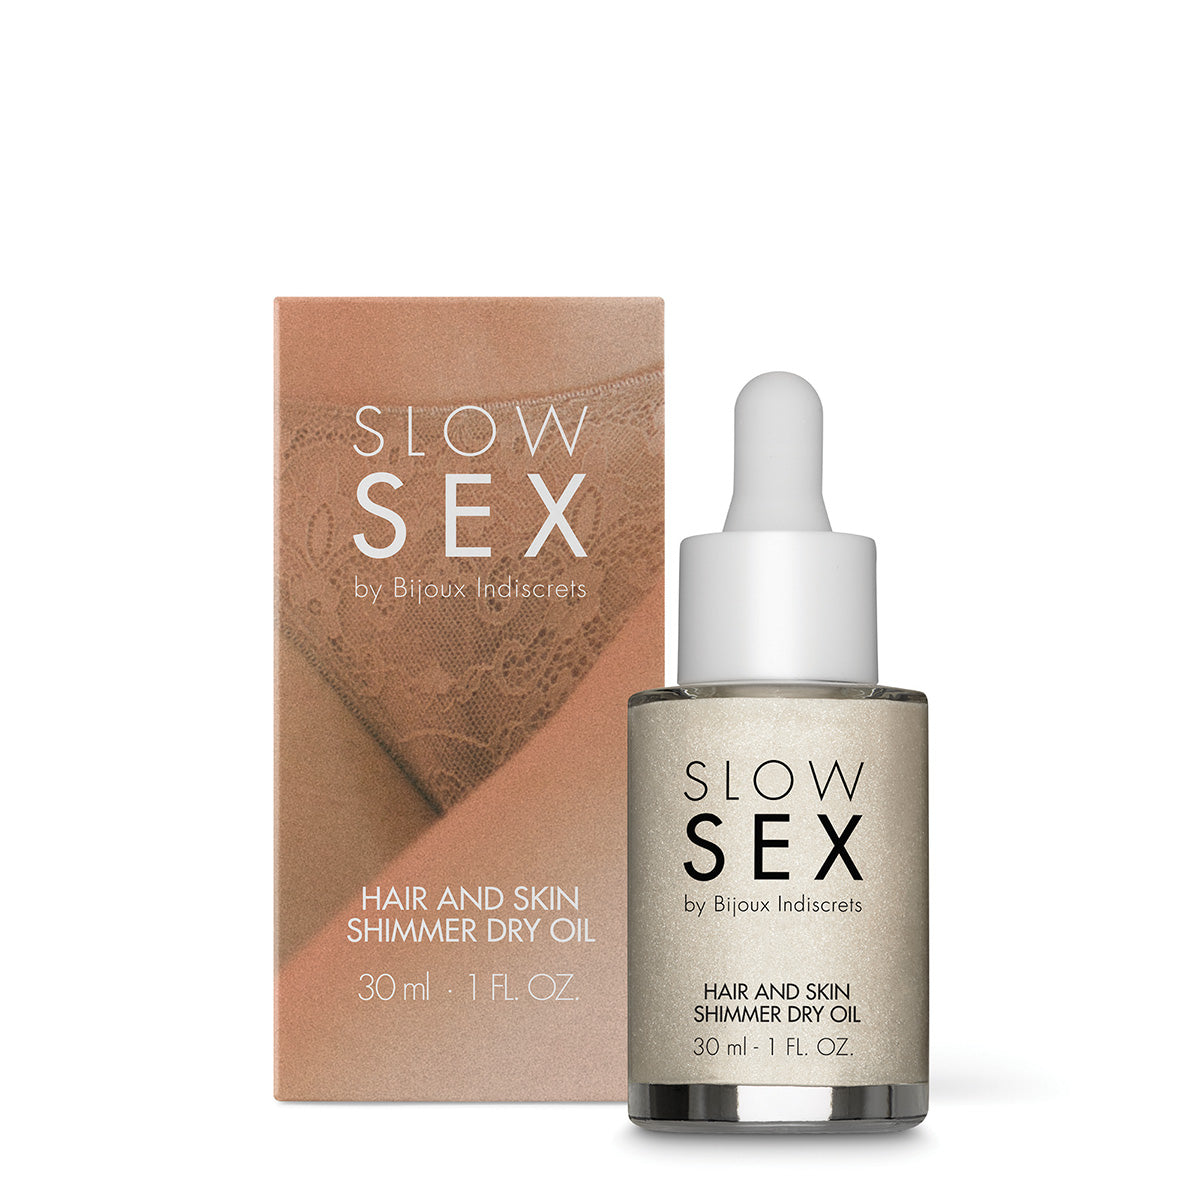 Slow Sex Hair & Skin Shimmer Dry Oil